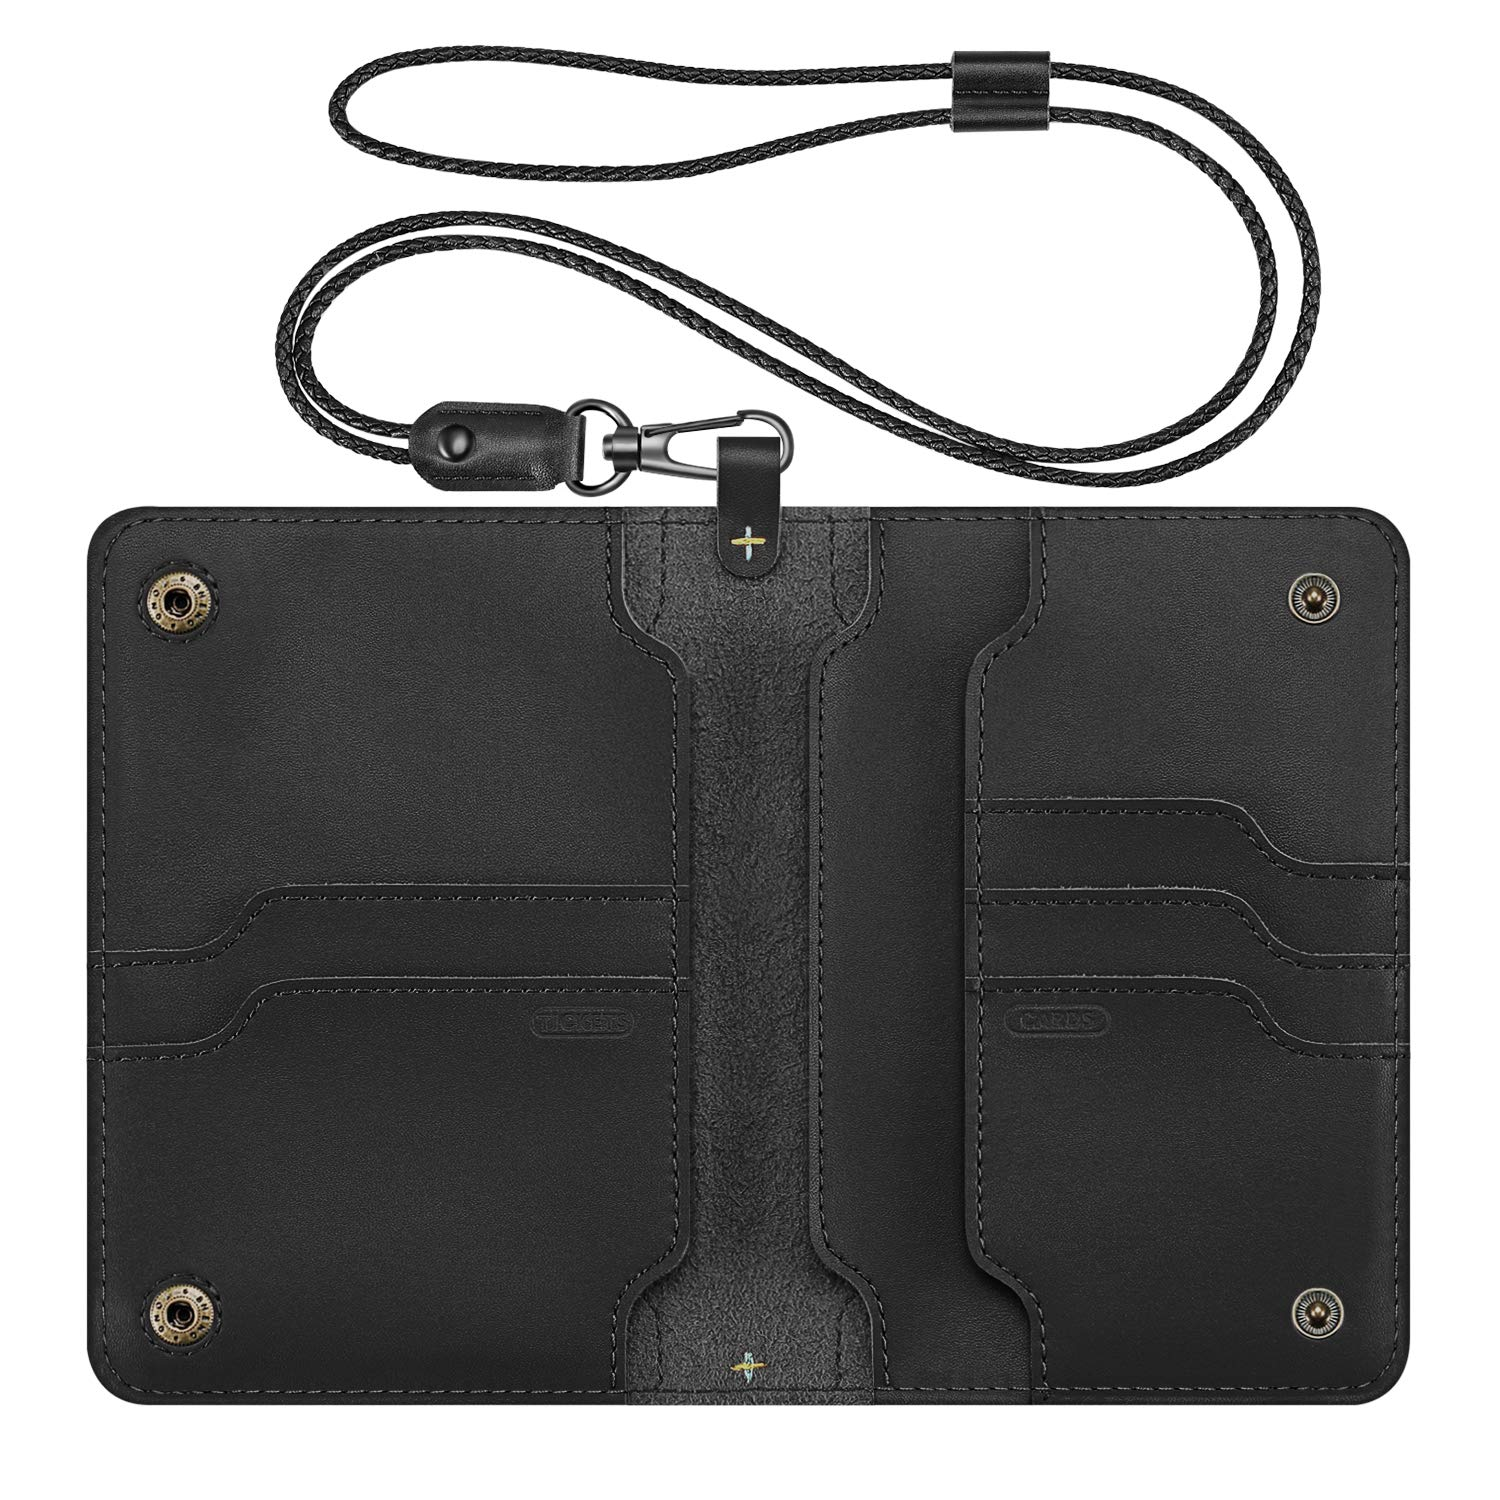 Genuine Leather Passport Holder, Fintie Travel Wallet with Lanyard Card Case Cover, Black by Fintie